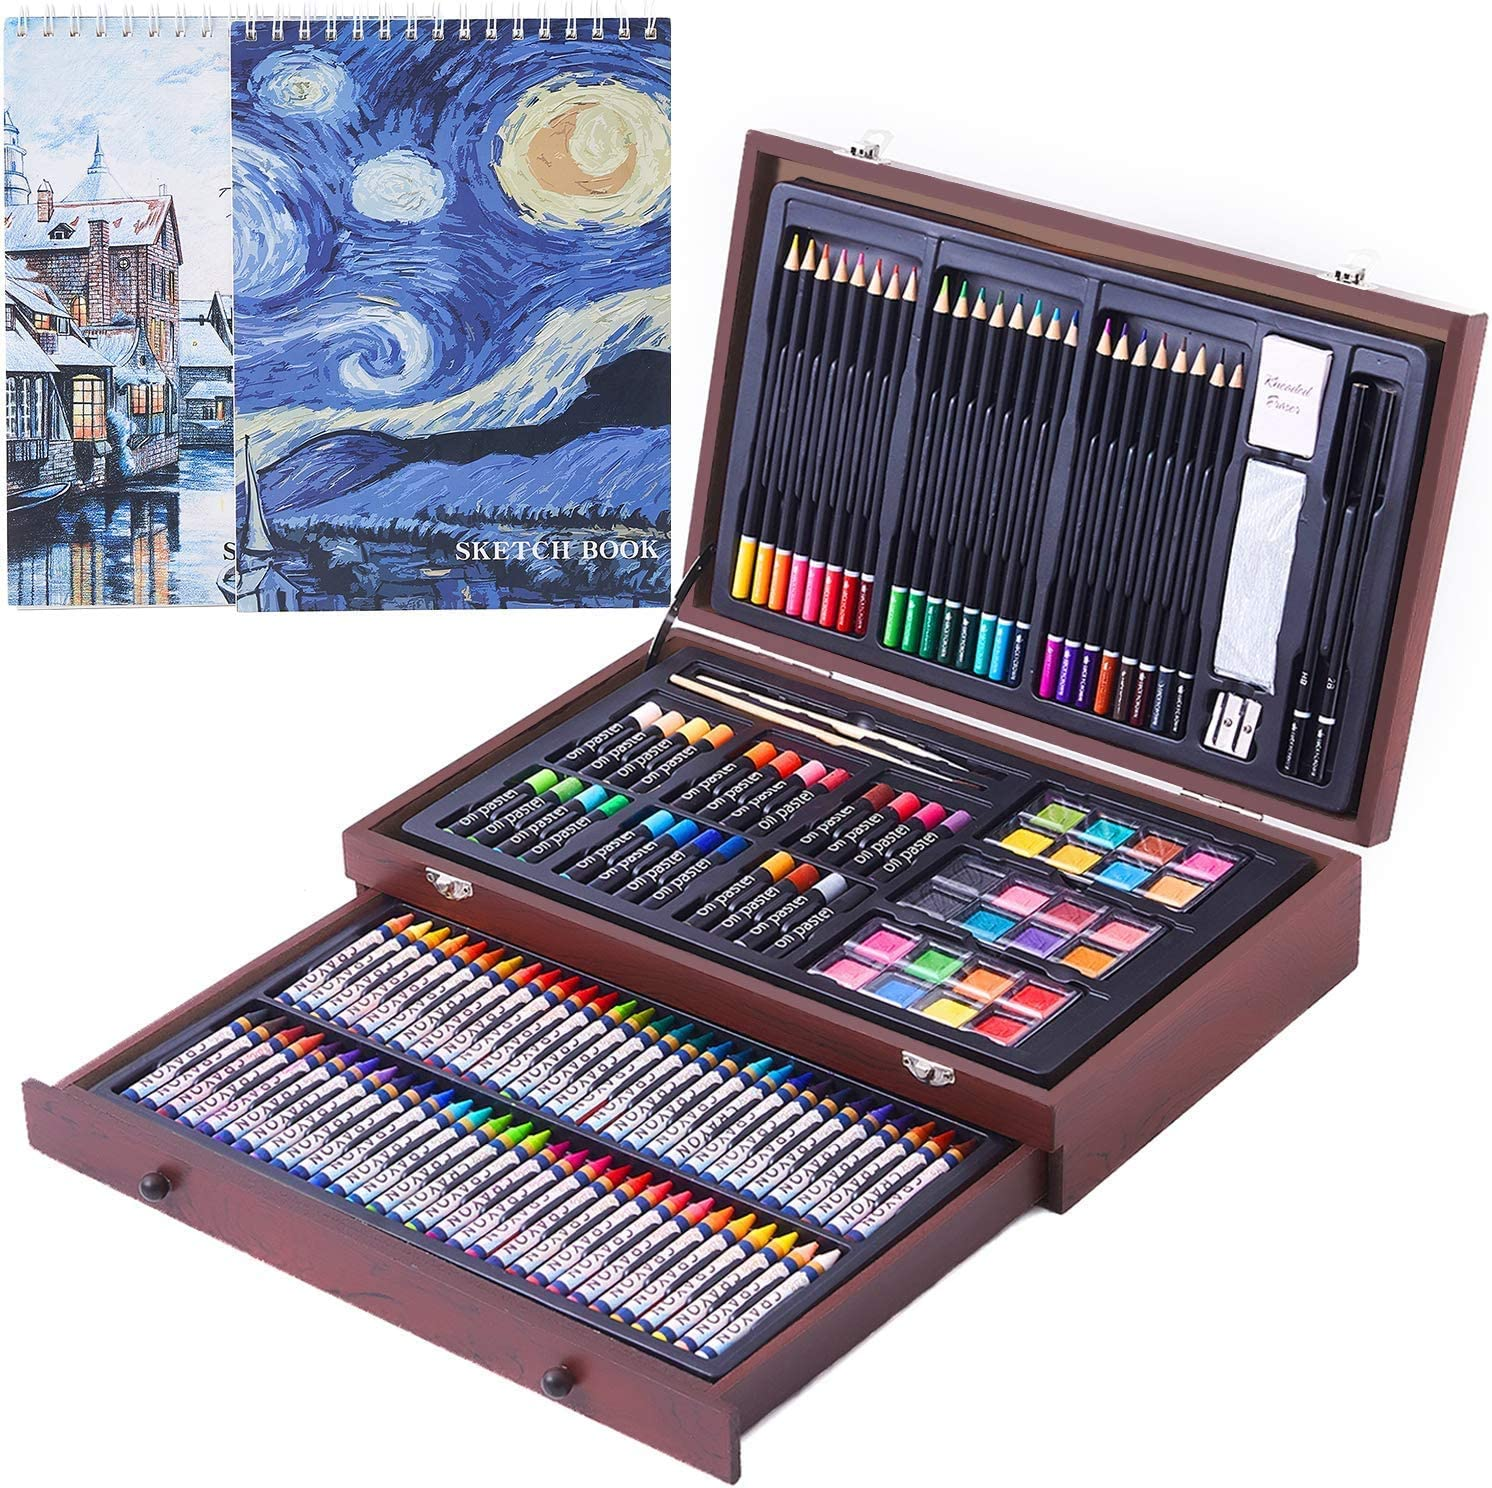 Amazon Com 145 Piece Deluxe Art Set With 2 X 50 Page Drawing Pad Art Supplies In Portable Wooden Case Crayons Oil Pastels Colored Pencils Watercolor Cakes Sharpener Sandpaper Deluxe Art Set Arts